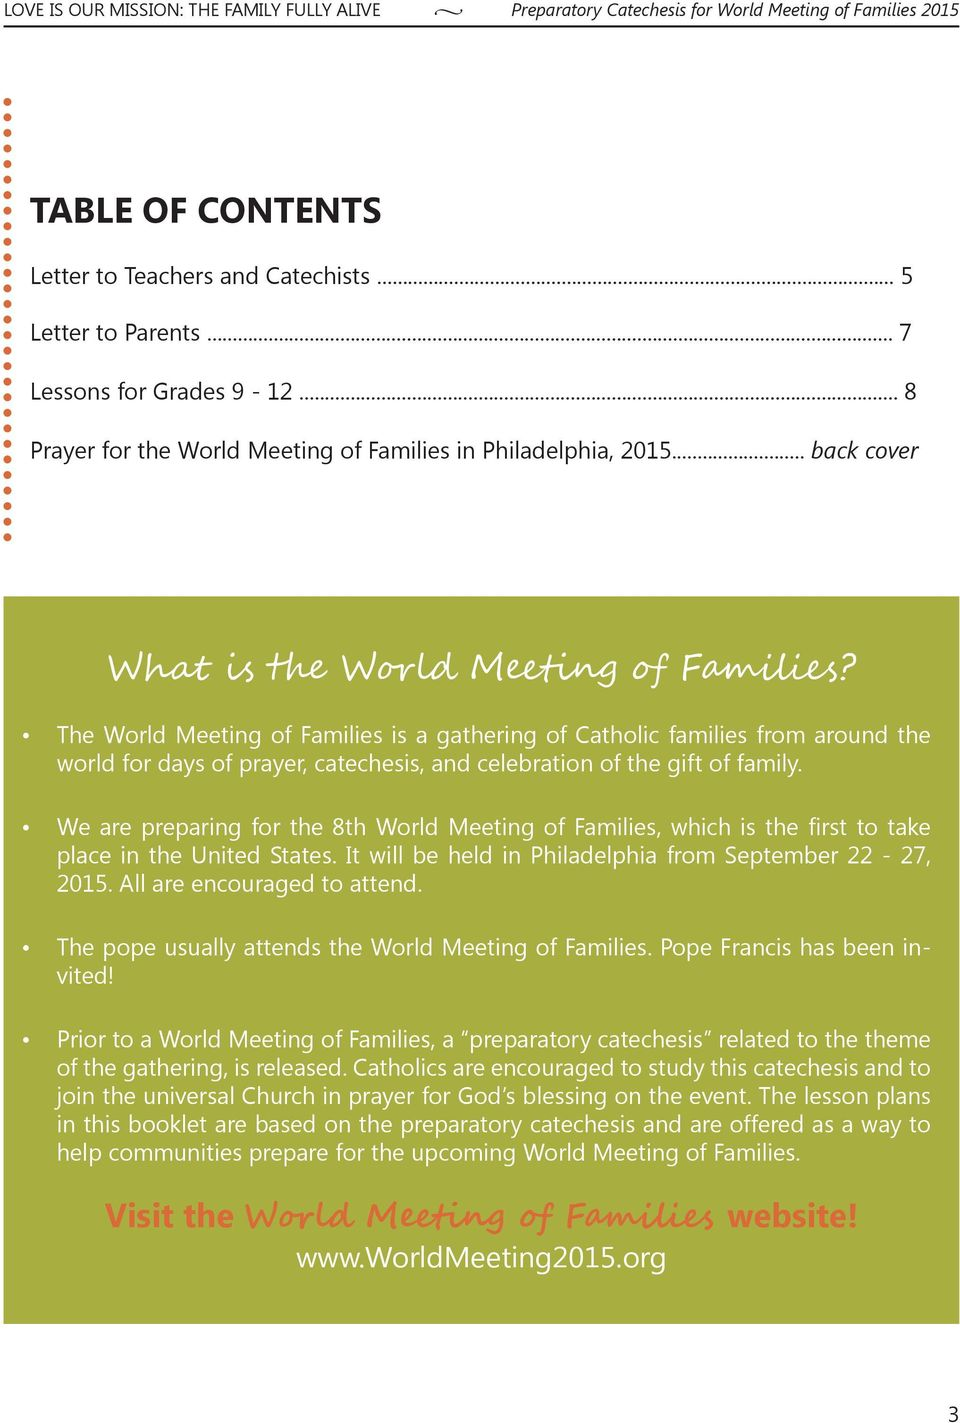 The World Meeting of Families is a gathering of Catholic families from around the world for days of prayer, catechesis, and celebration of the gift of family.